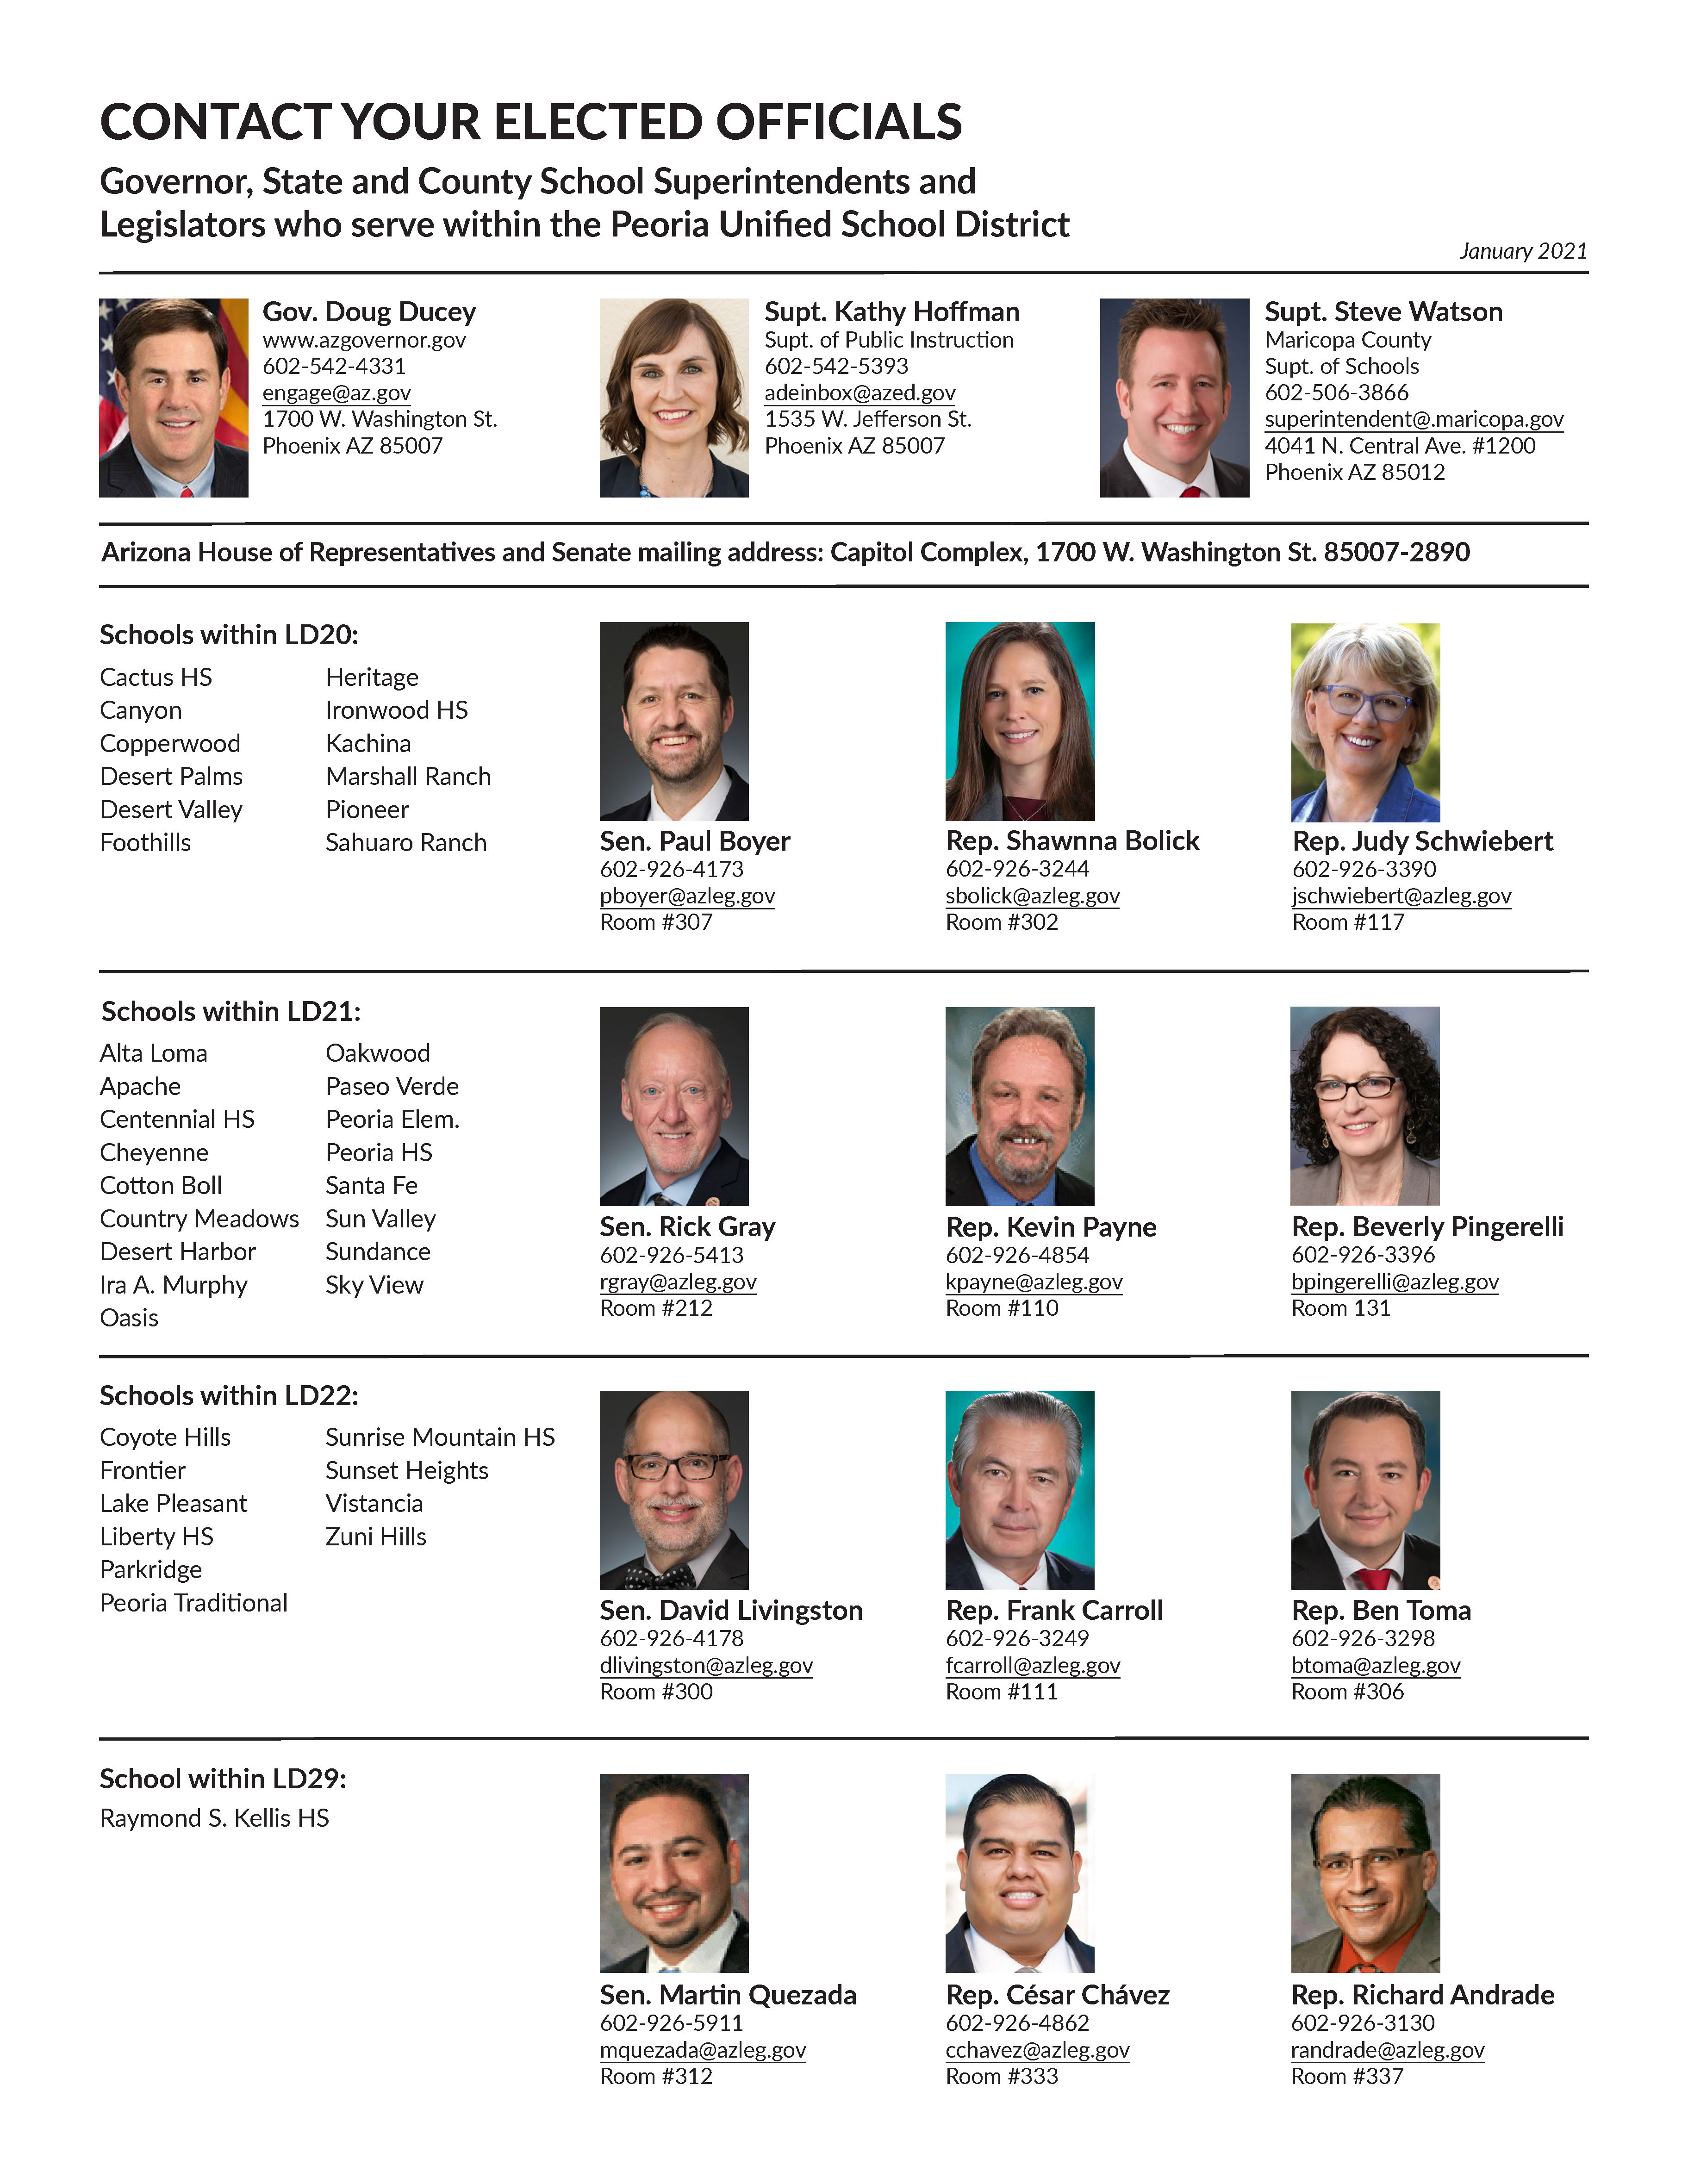 Elected officials names, photos and contact information